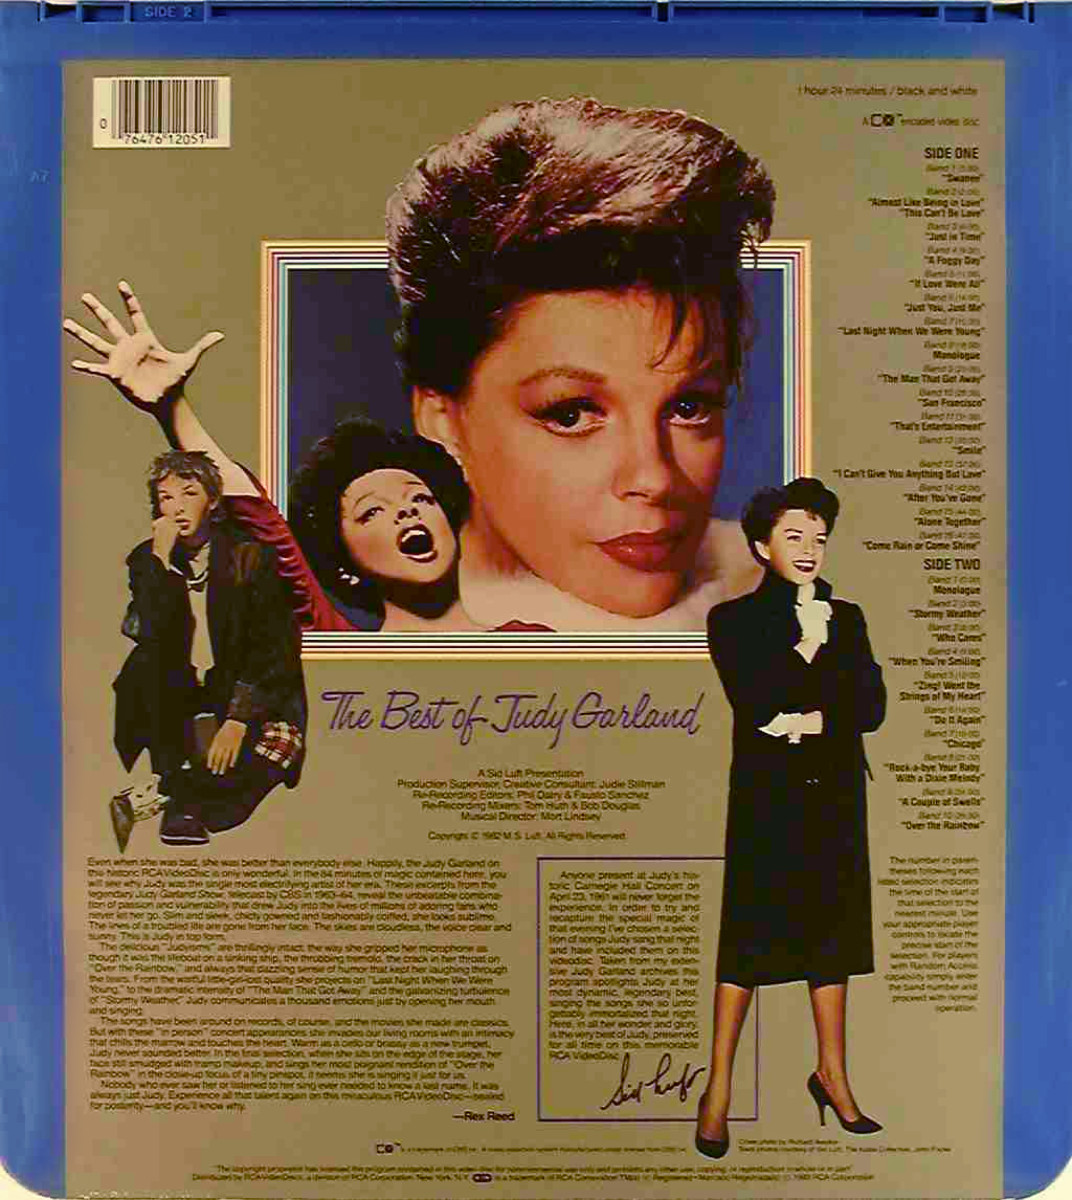 The back side of the disc cover or The Best Of Judy Garland Movie CED Selectavision Video Disc